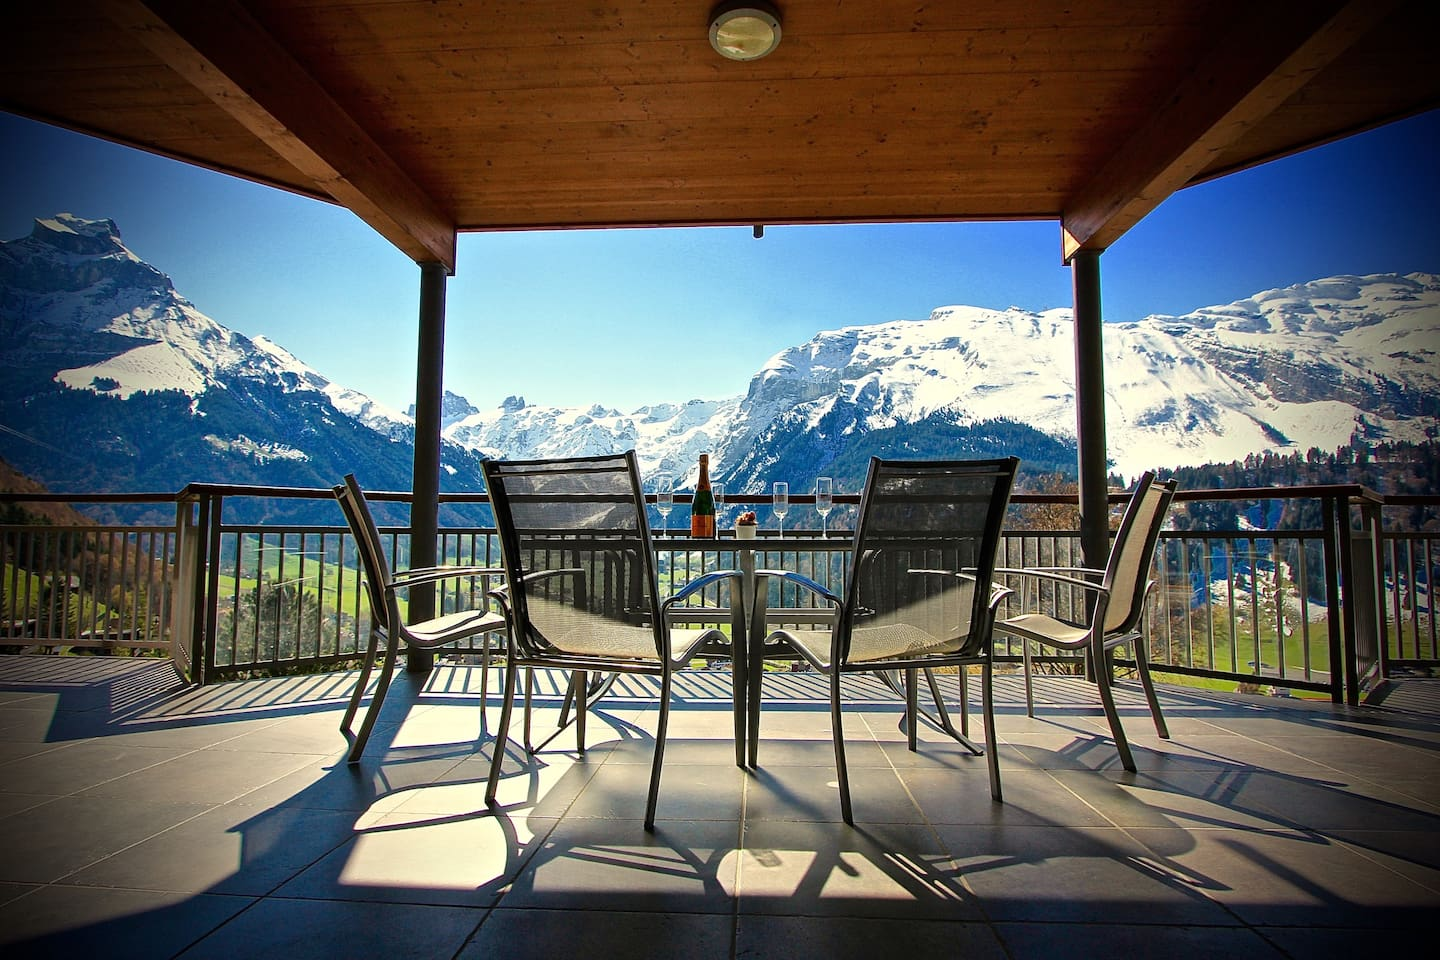 alphaven apt a tub log fire apartments for rent in